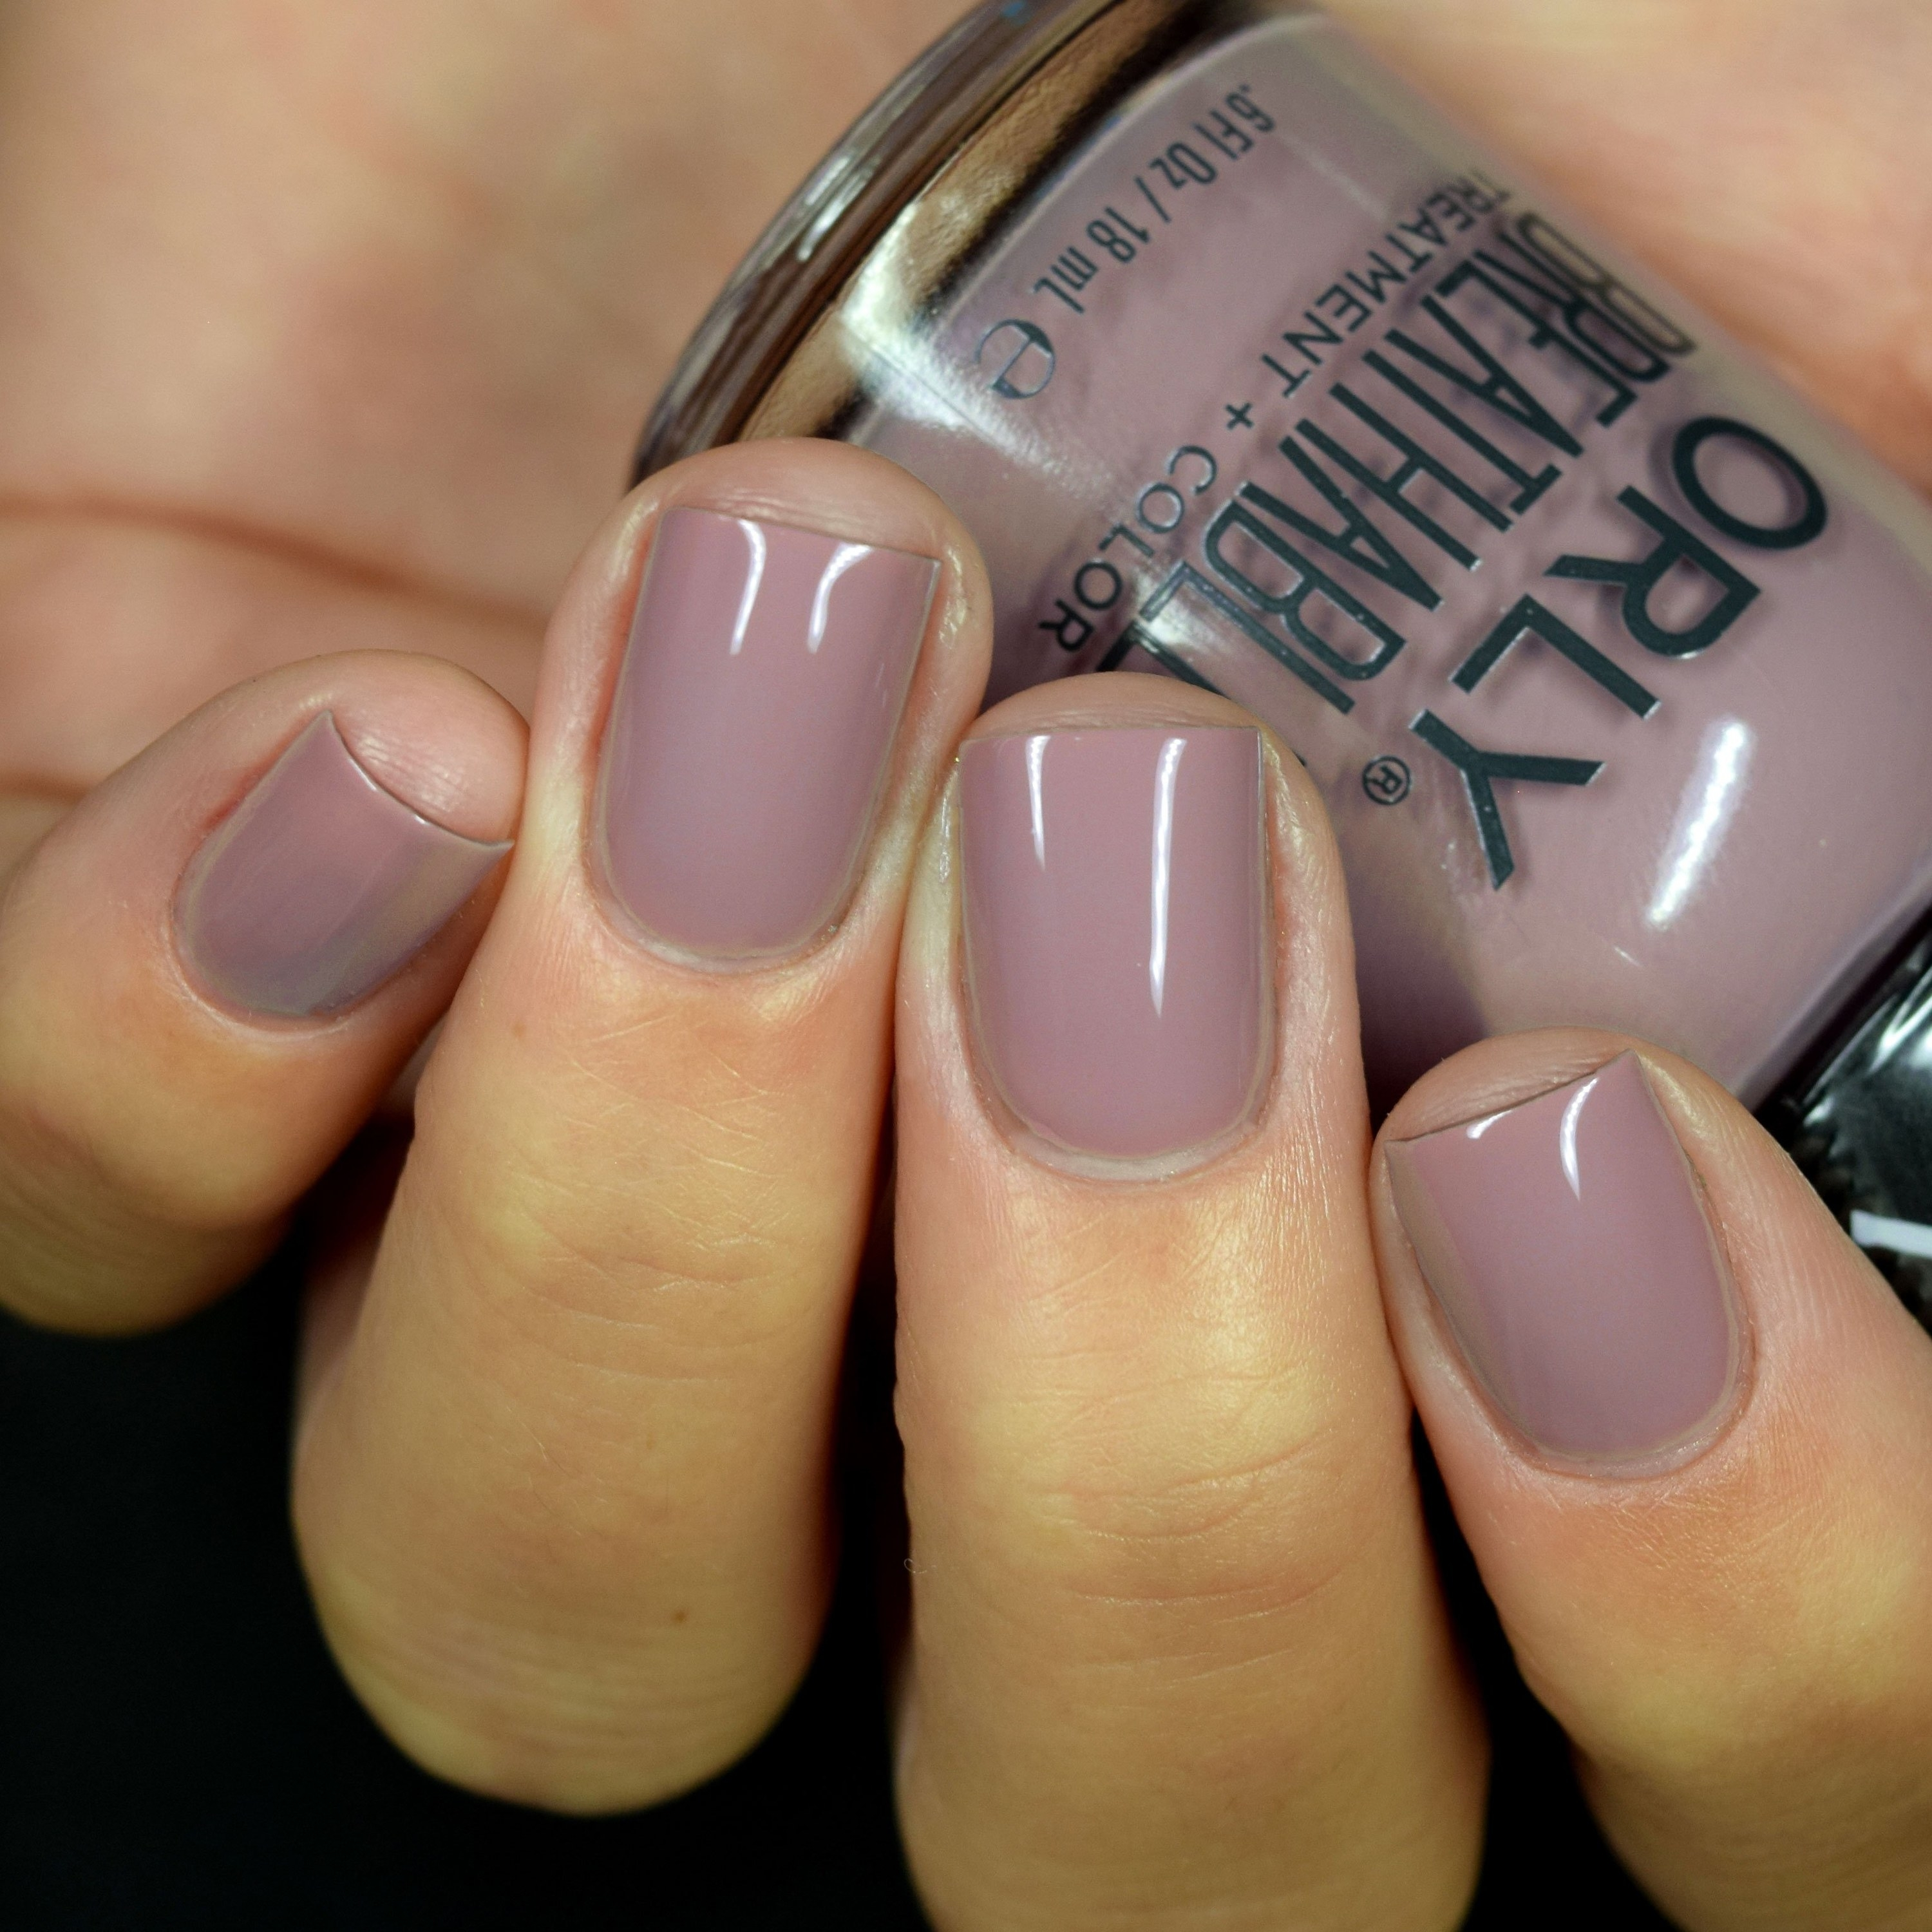 model wears light purple Orly breathable one-step polish on fingers